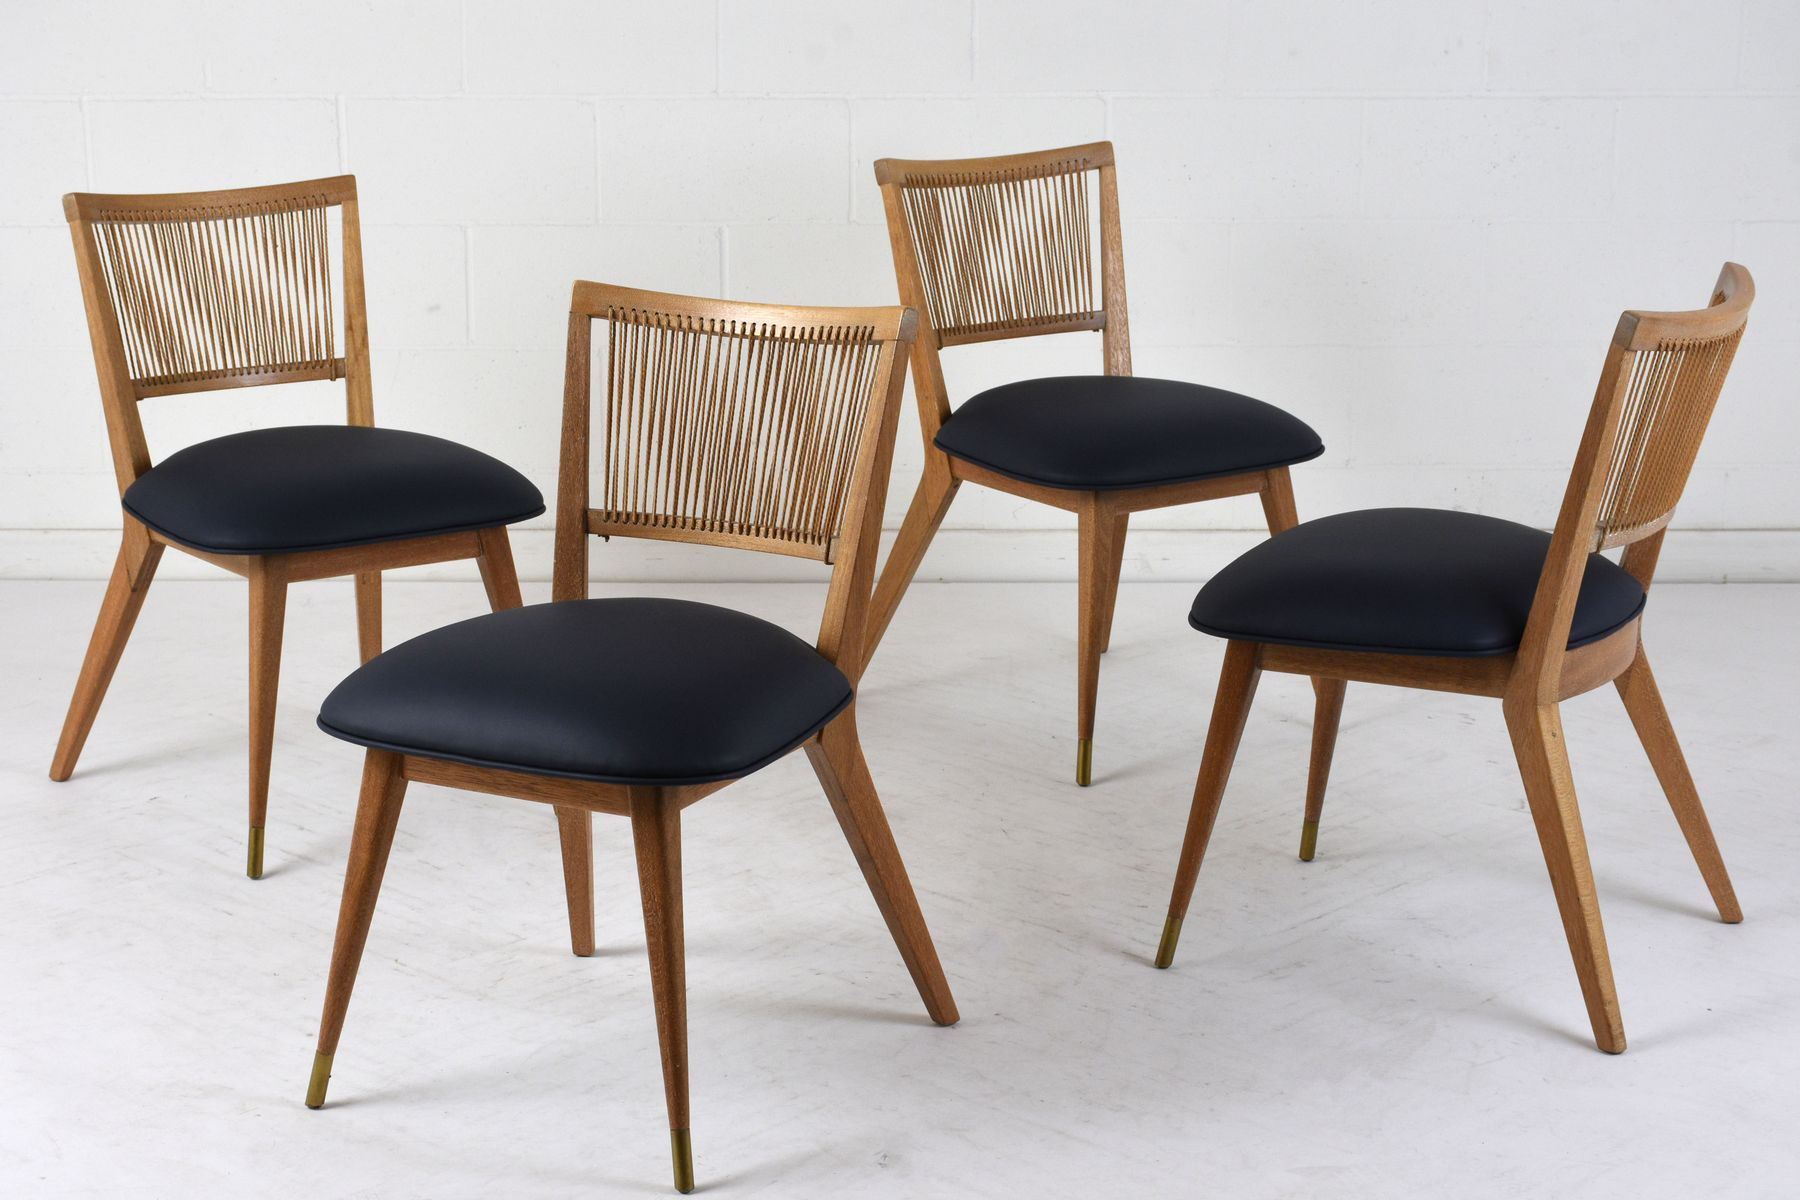 Modernist side chairs 1960s set of 4 for sale at pamono for Side chairs for sale